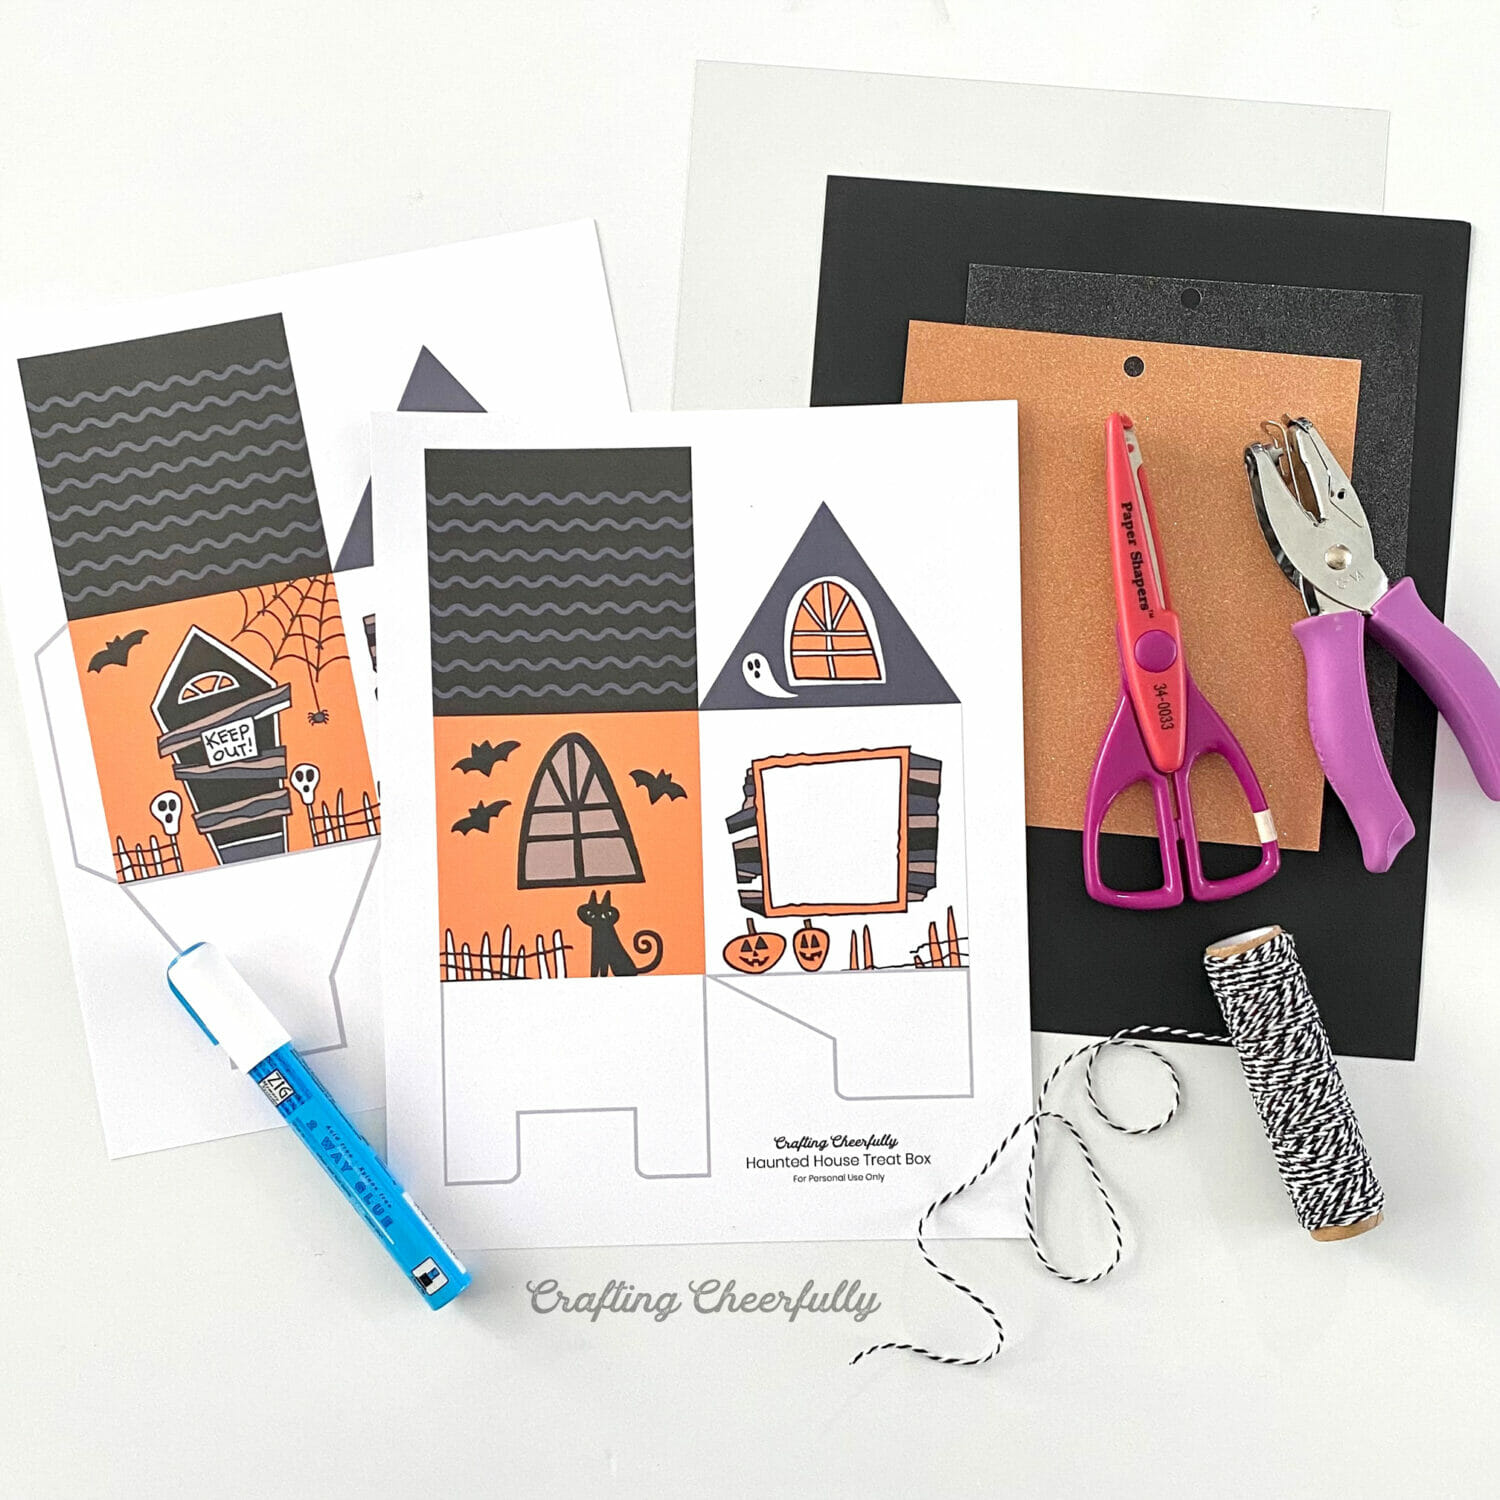 Supplies needed to make a haunted house treat box lay on a white table top.